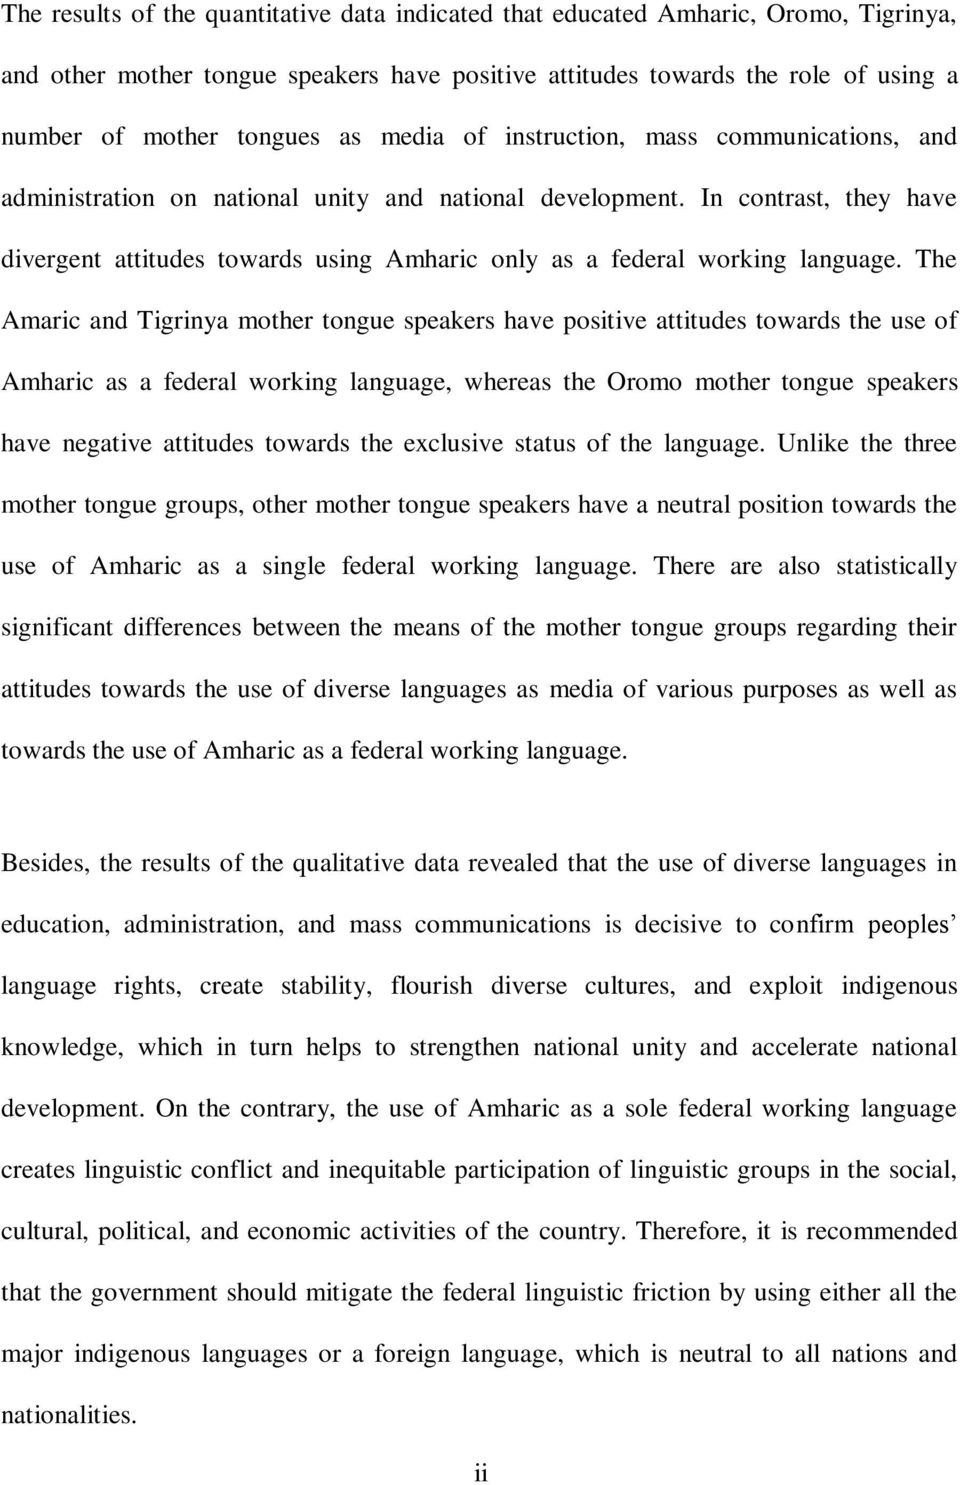 MULTILINGUAL LANGUAGE POLICY AND LANGUAGE PRACTICE IN ETHIOPIA